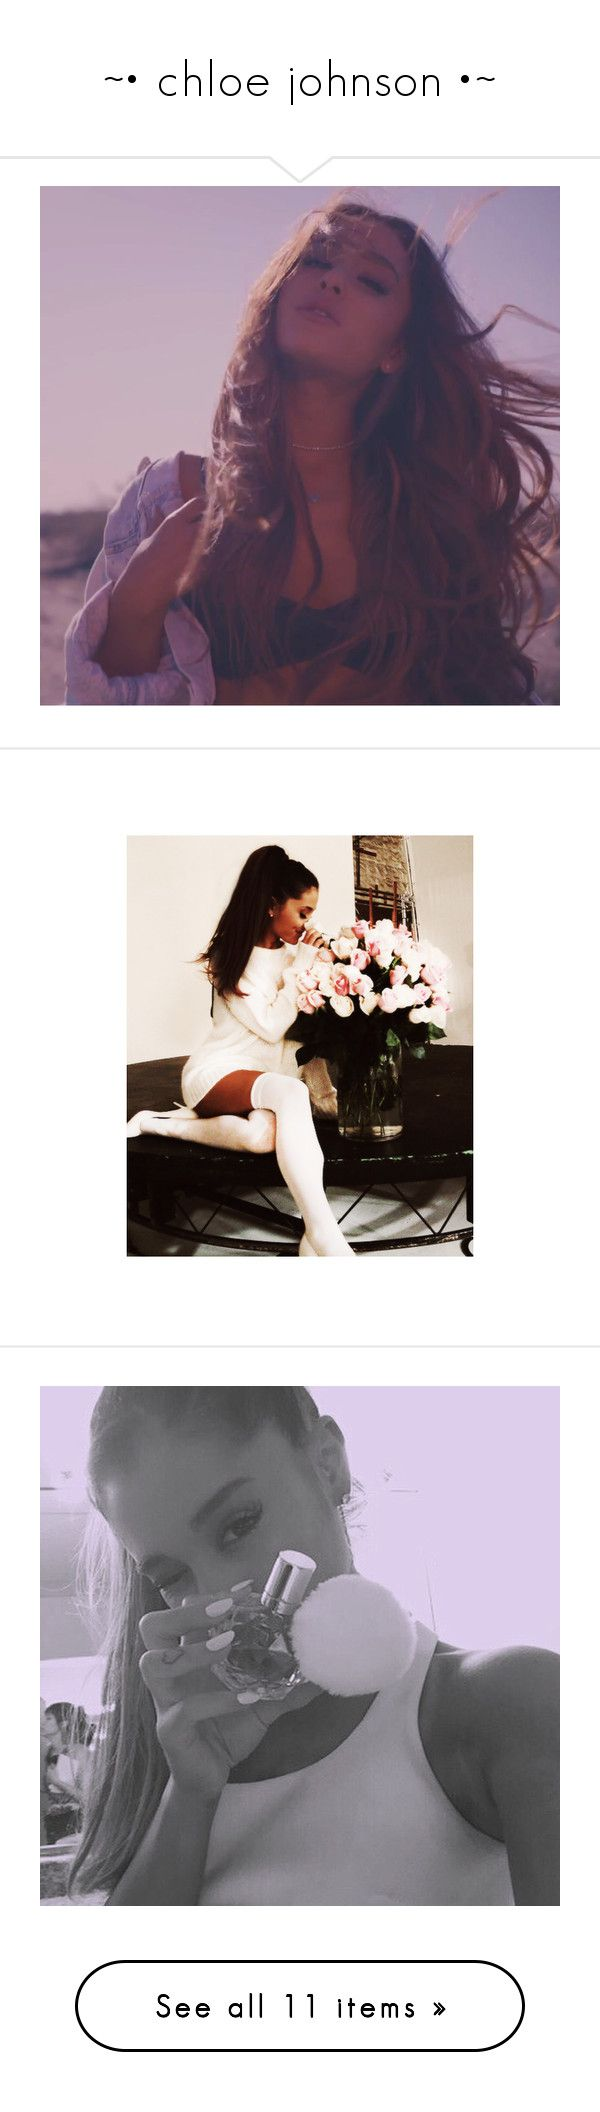 """""""~• chloe johnson •~"""" by ajlee28 ❤ liked on Polyvore featuring ariana grande, ariana, hair, people and pictures"""